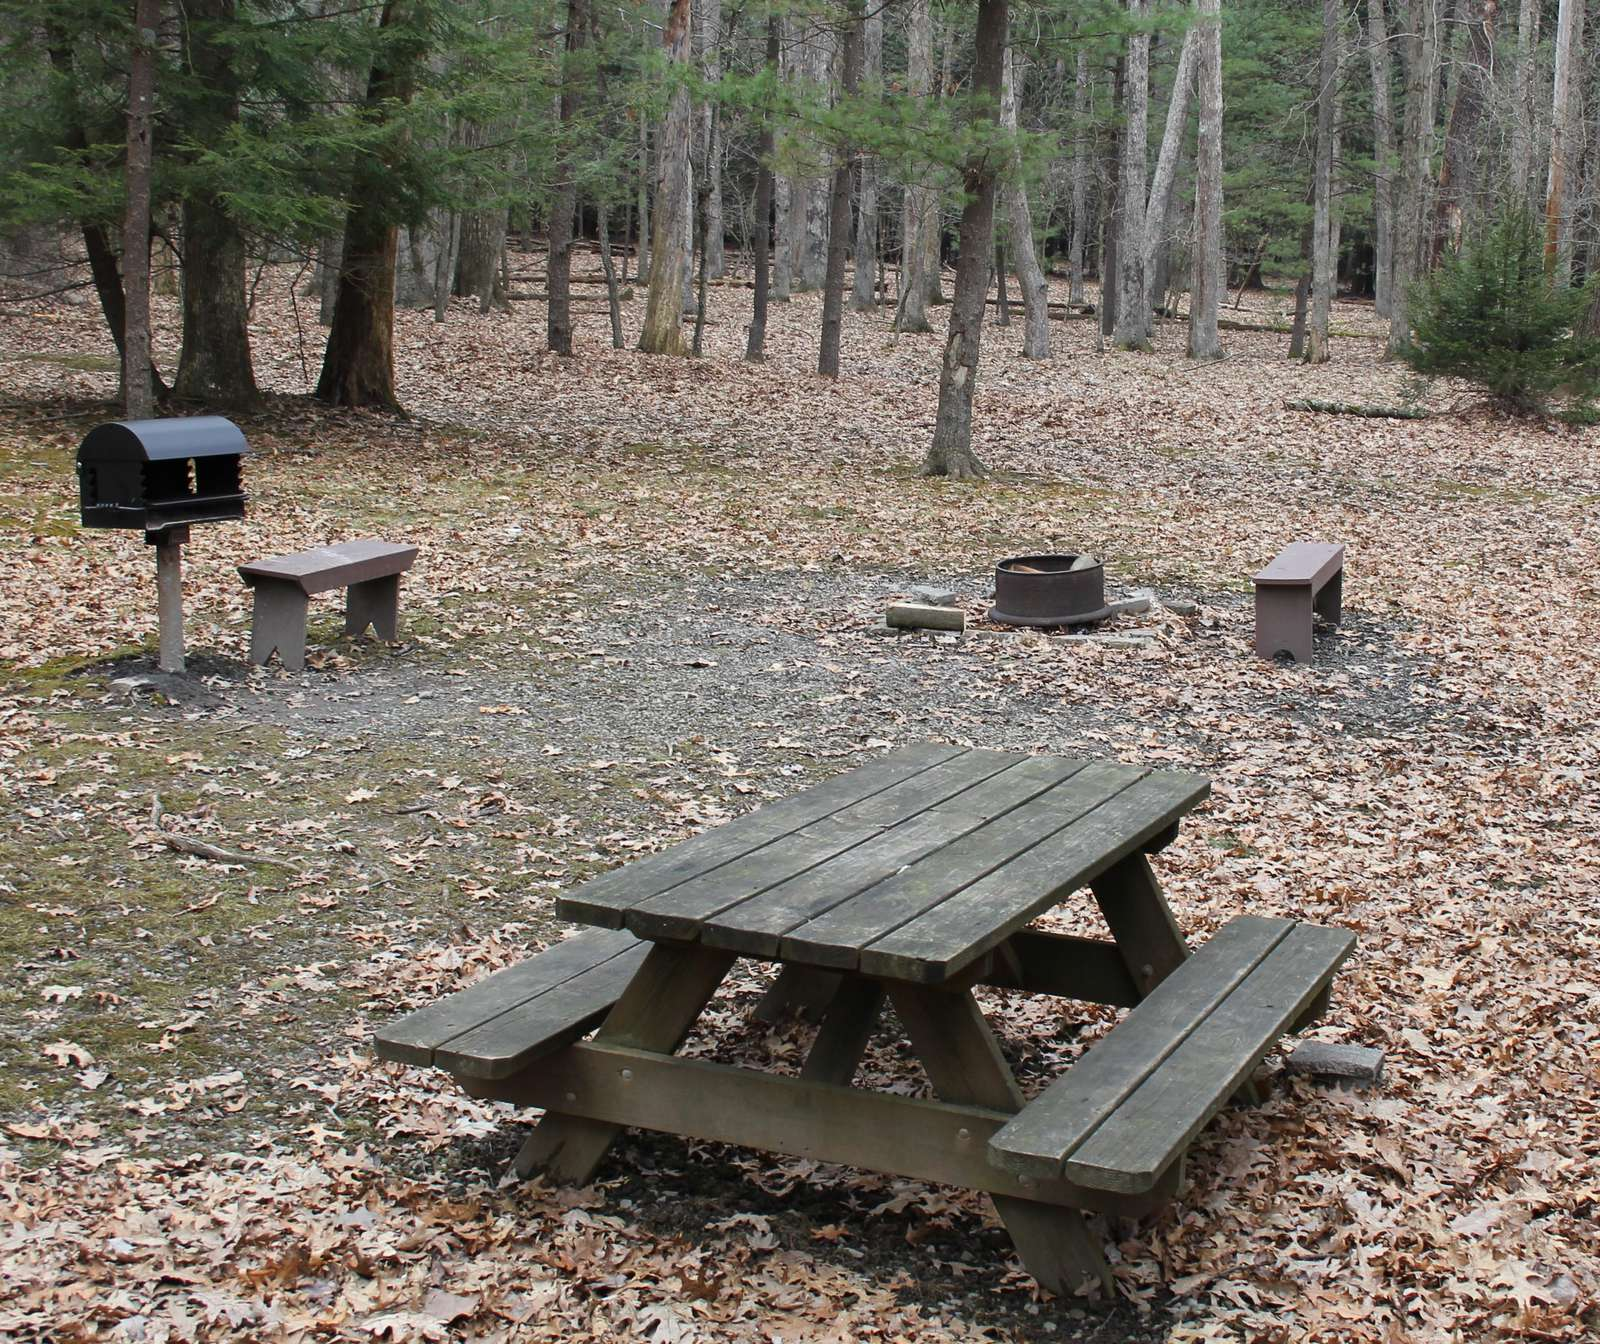 Picnic Area at Douglas Fir Cabin